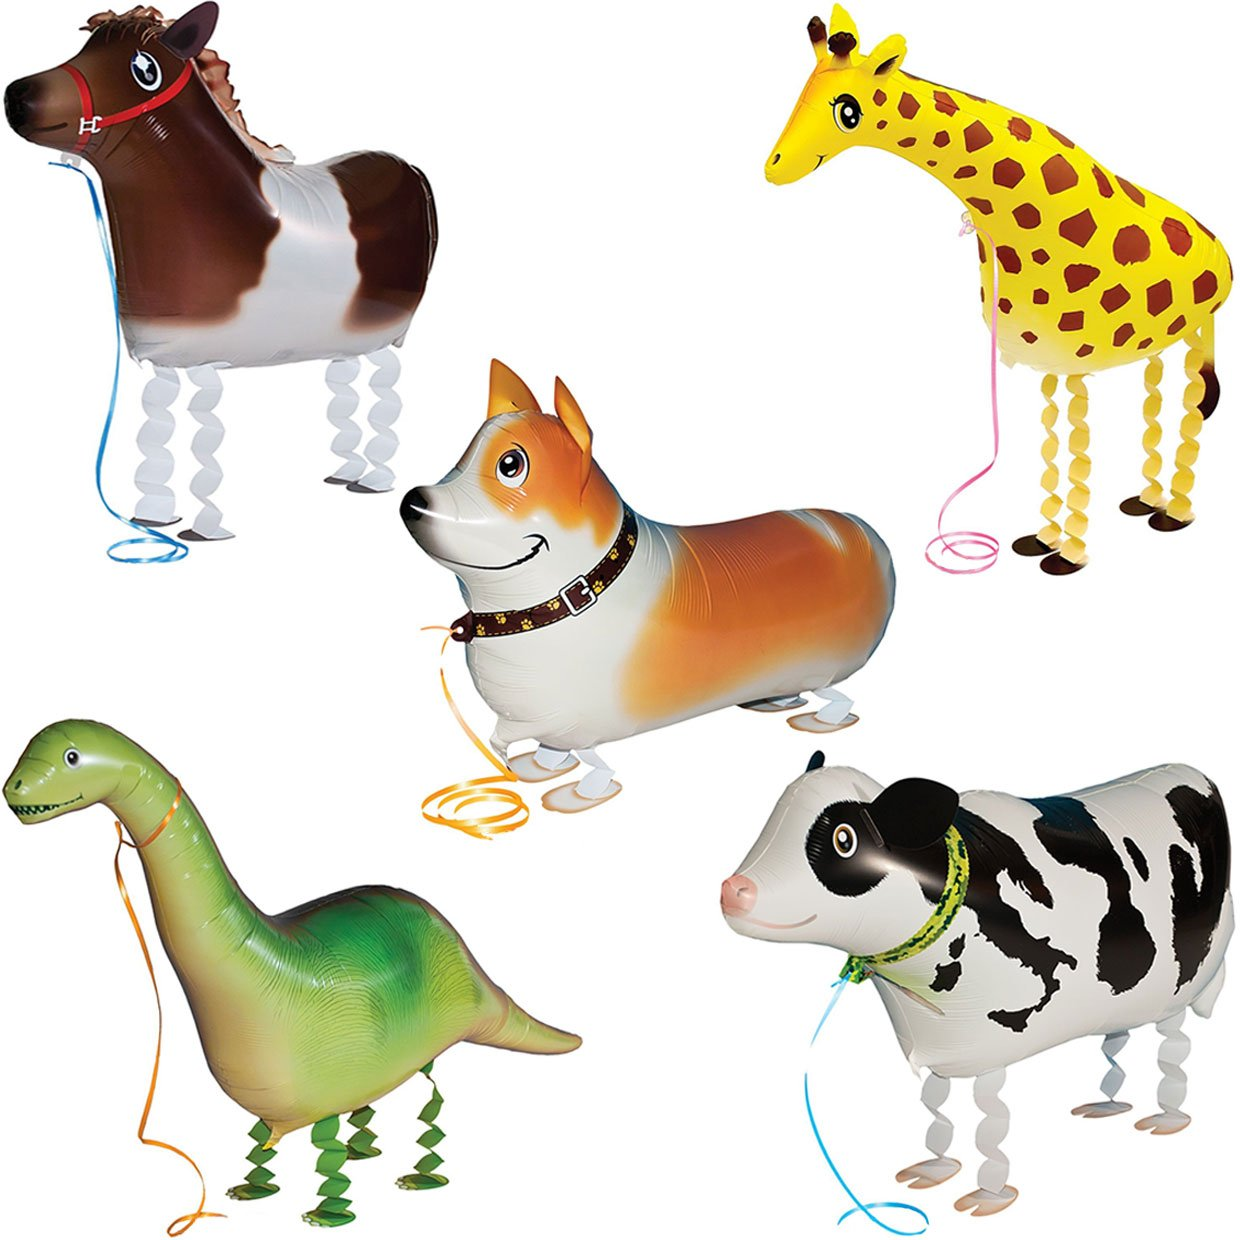 5pcs Walking Pet Animal Balloons Kids toys Party Favors Gifts for Girls Air Walker group-F by Merveilleux (Image #1)